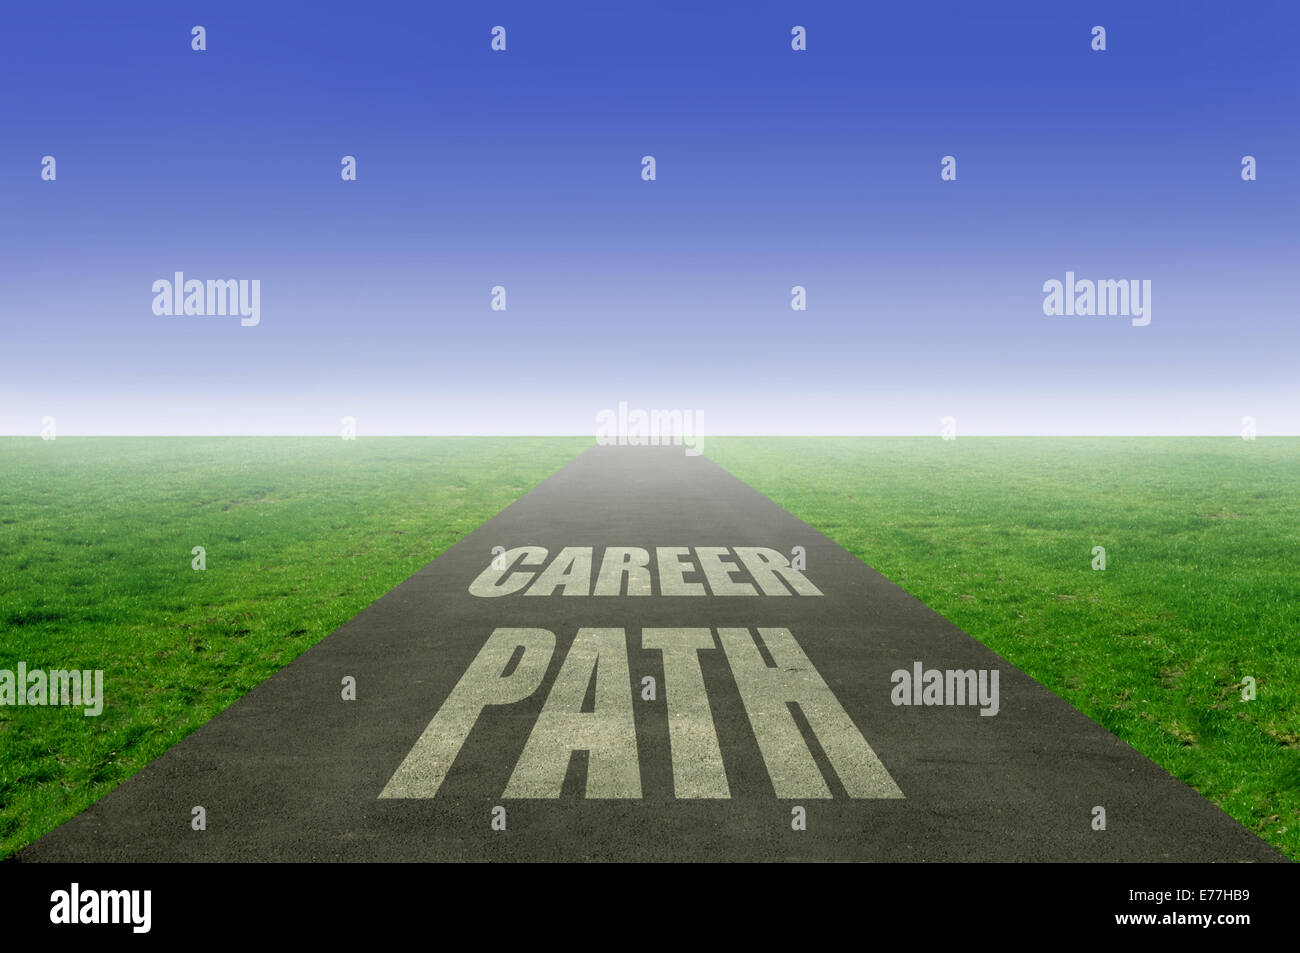 Career path concept - Stock Image